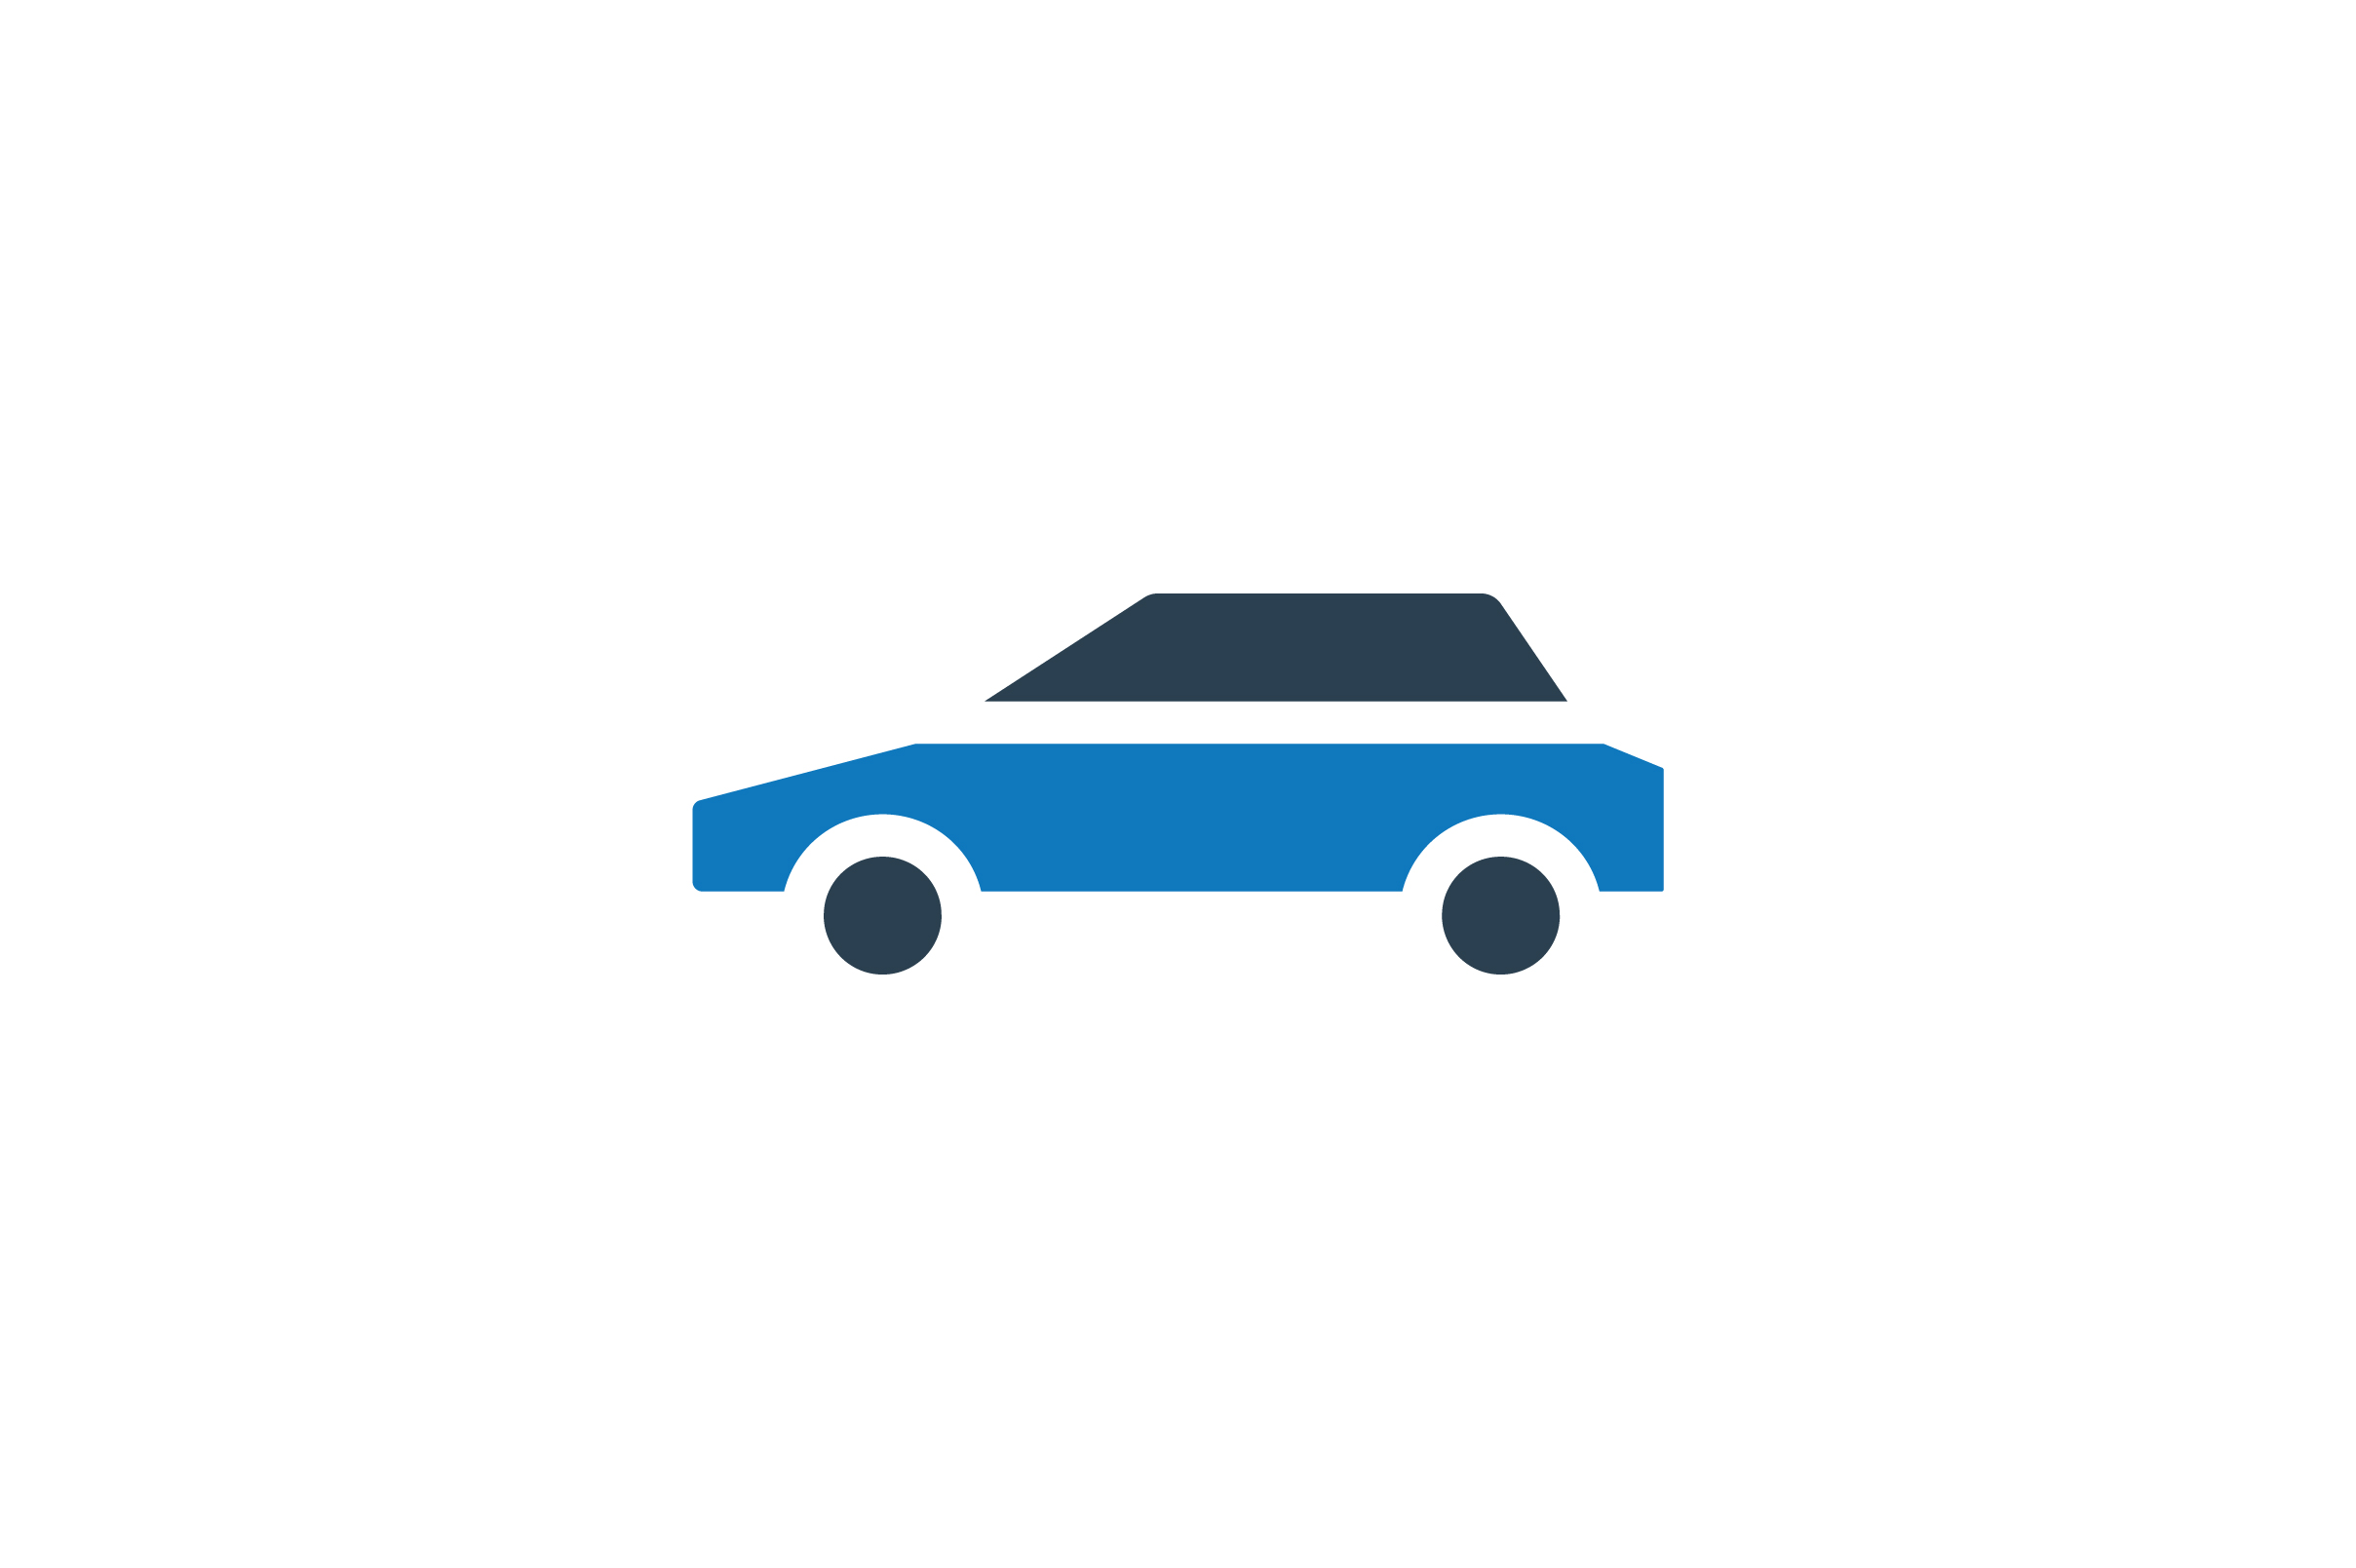 Download Free Car Glyph Blue Icon Vector Graphic By Riduwan Molla Creative for Cricut Explore, Silhouette and other cutting machines.